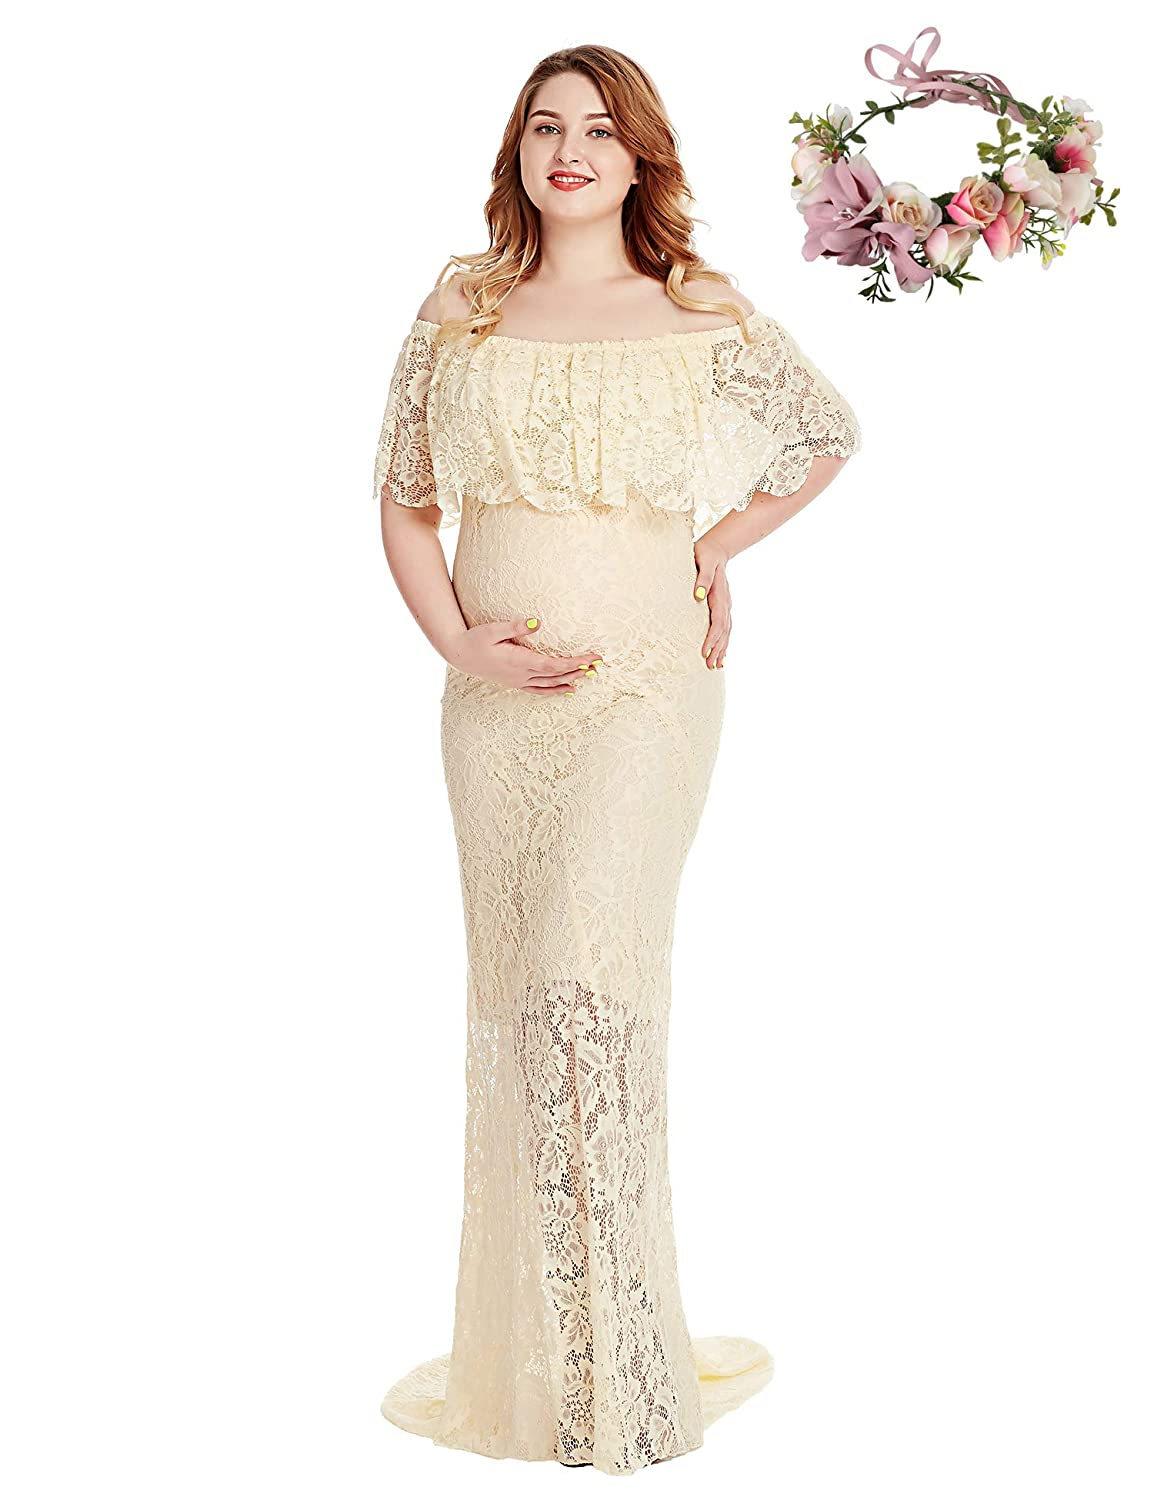 Beige YOFEEL Women's Off Shoulder Short Sleeve Ruffles Lace Maternity Gown Maxi Photography Dress